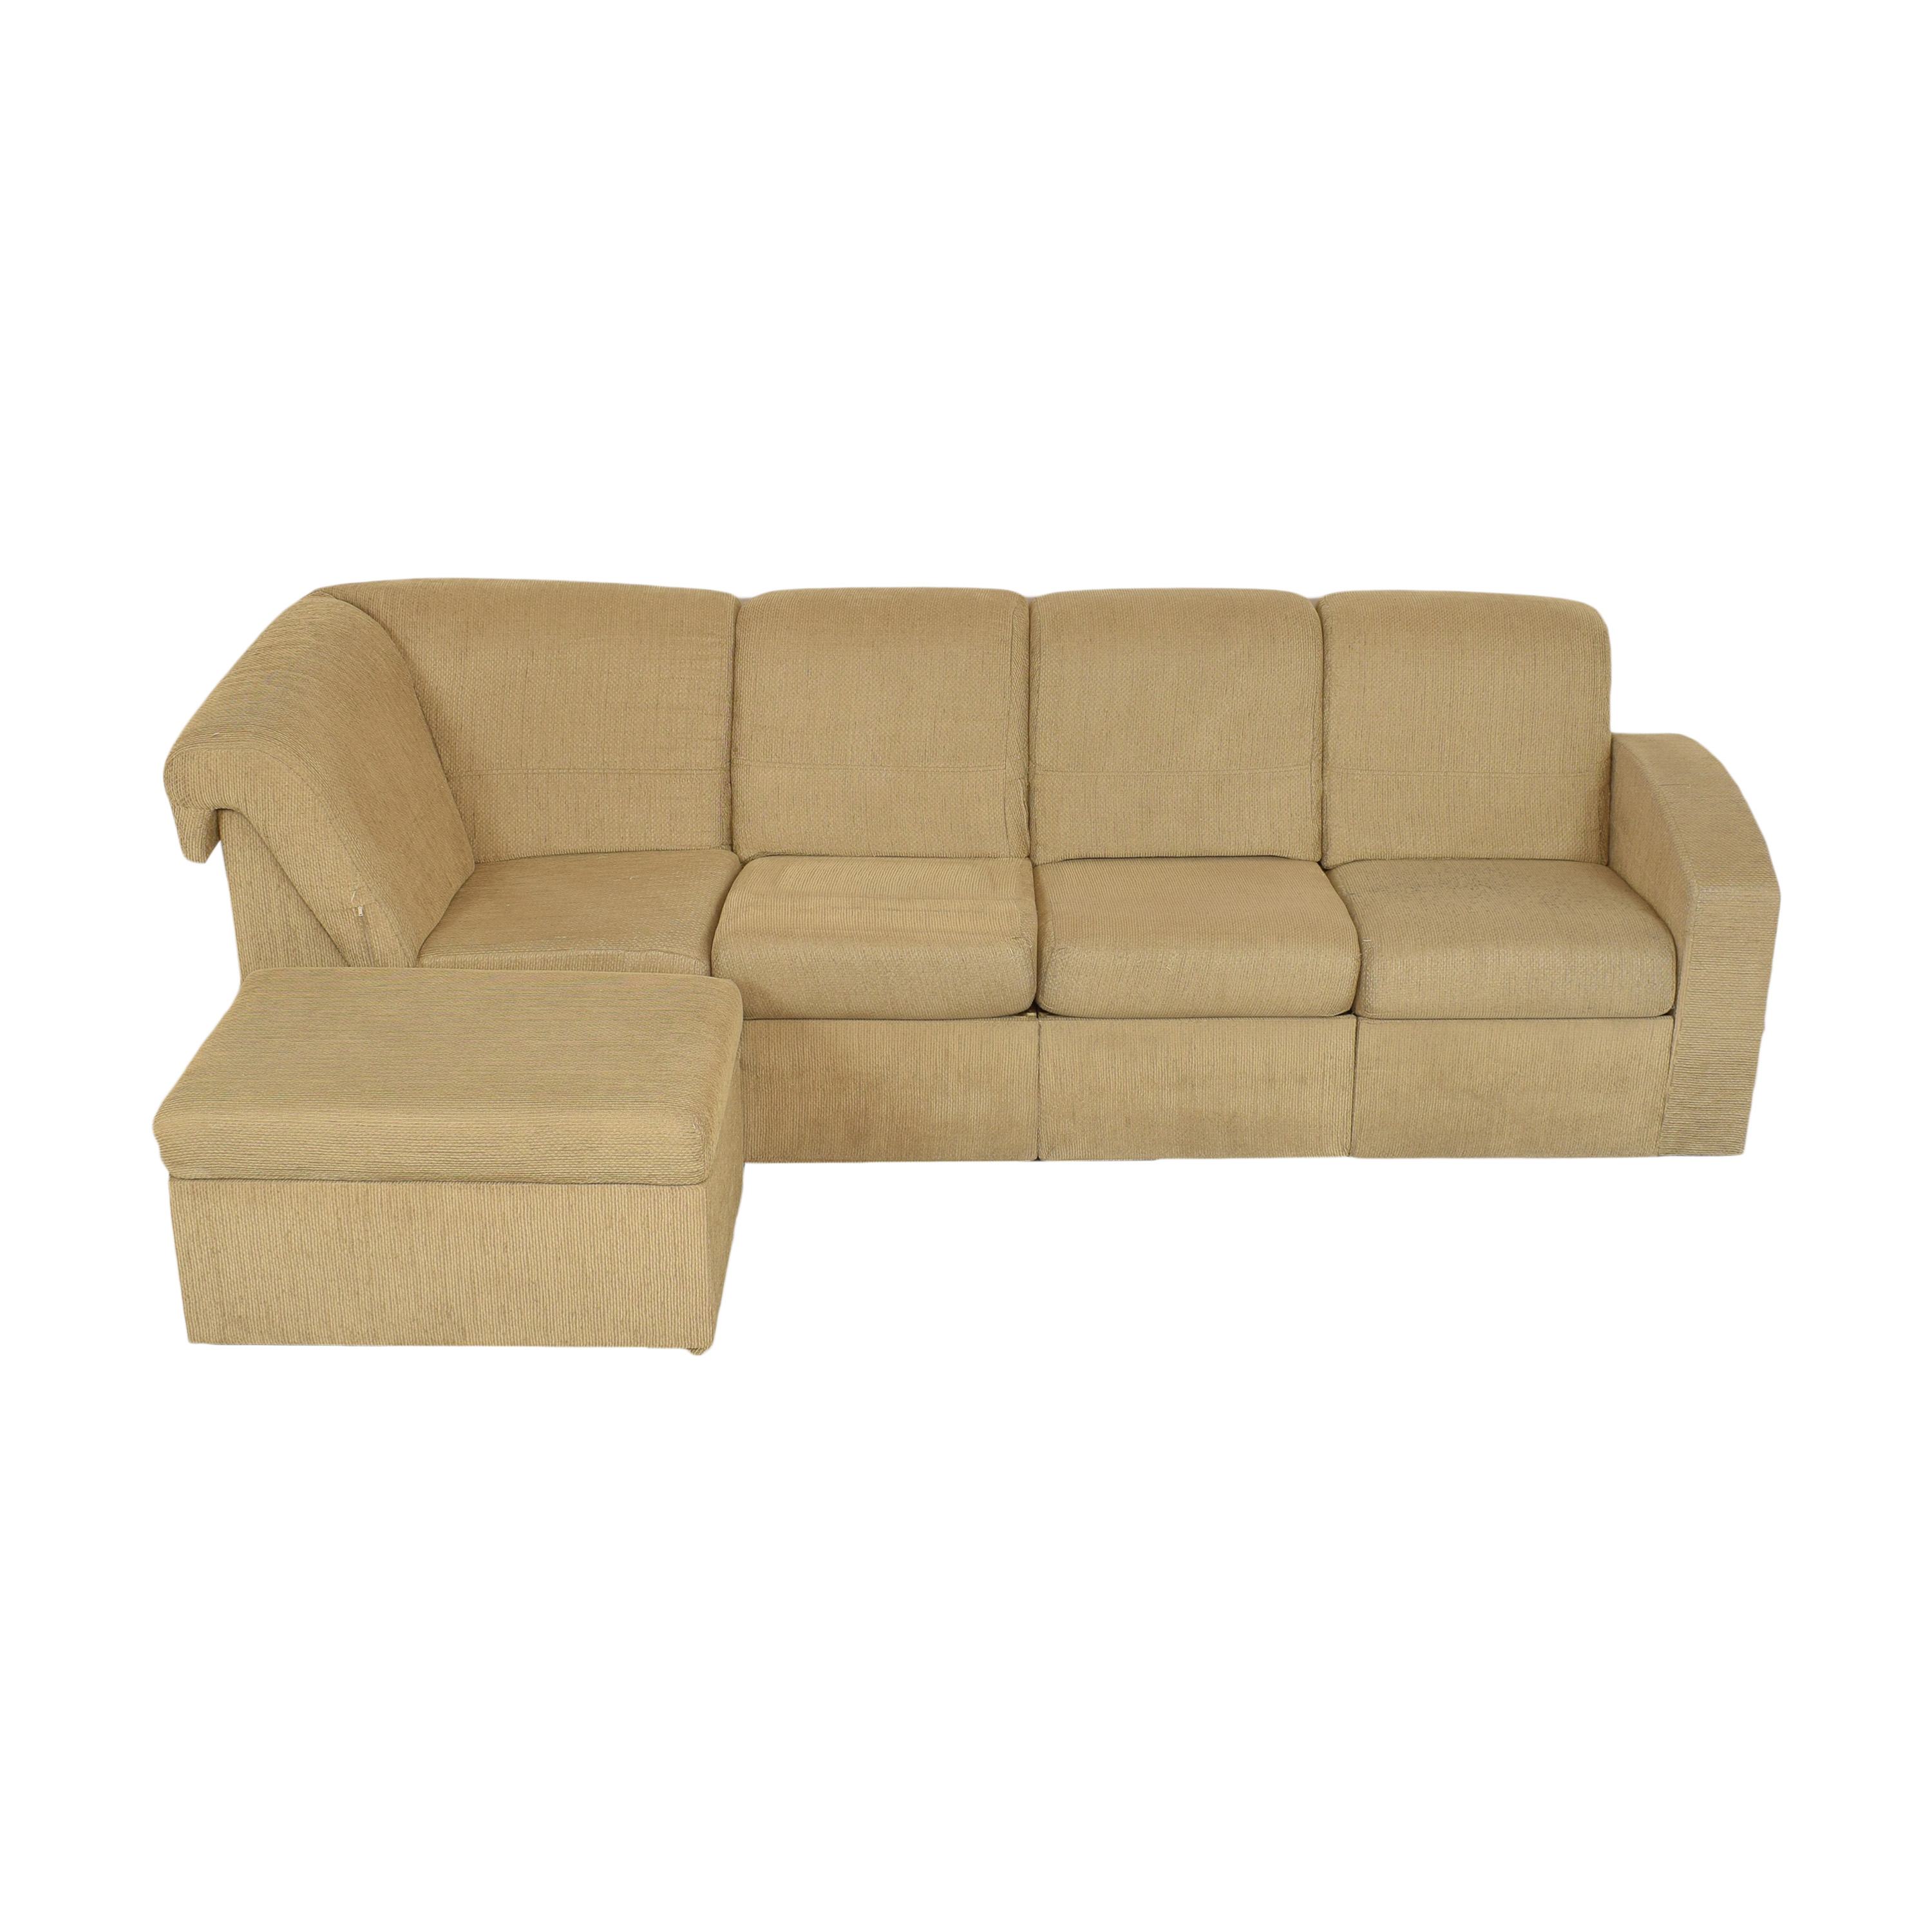 buy Home Reserve Brooks Sectional Couch Home Reserve Sofas